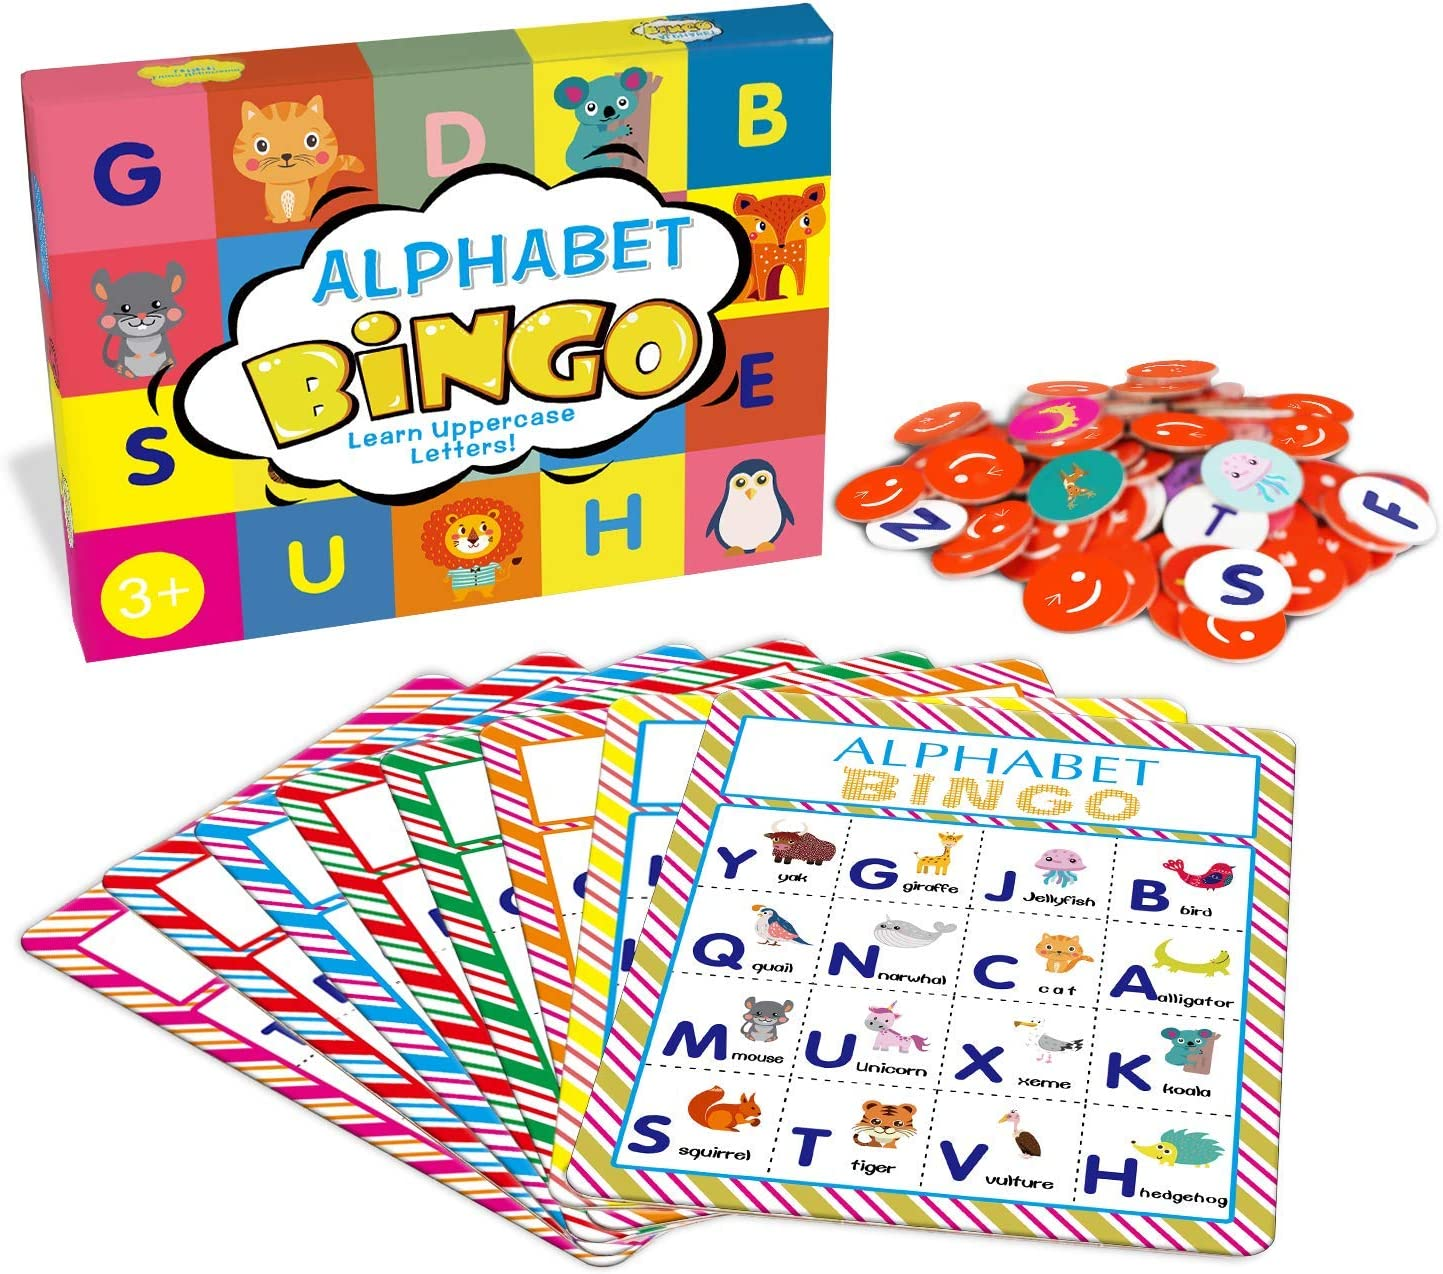 Deeplay Alphabet Bingo Game Card Board Matching Game Set, ABC Letters Animals Recognition Learning Bingo Paper Game Supplies for Kids, Preschoolers, Classroom, Kindergarten and Group Games